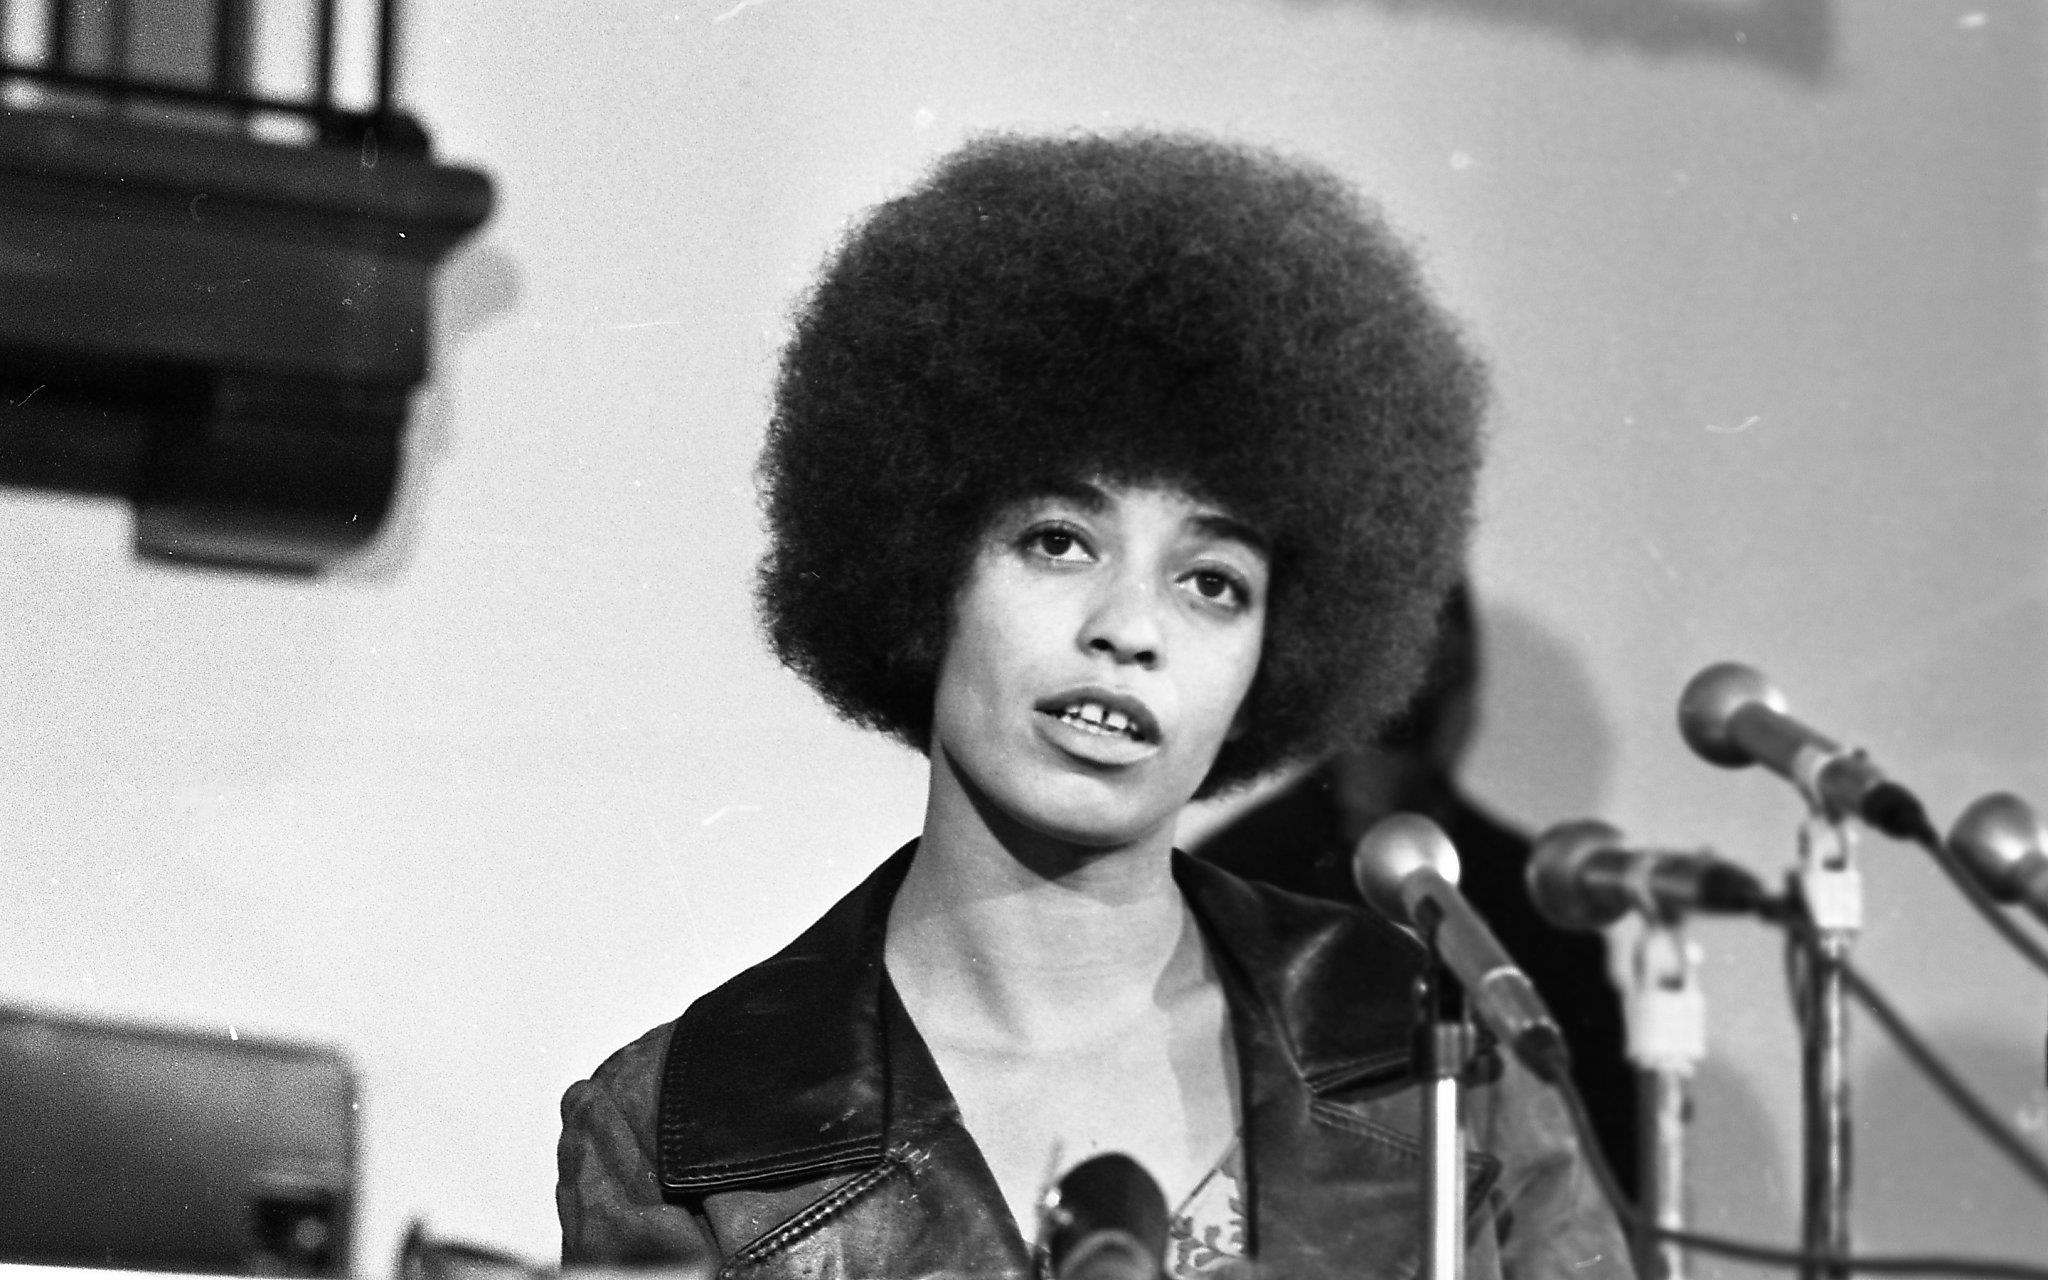 Angela Davis' early California days - before and after her infamous trial